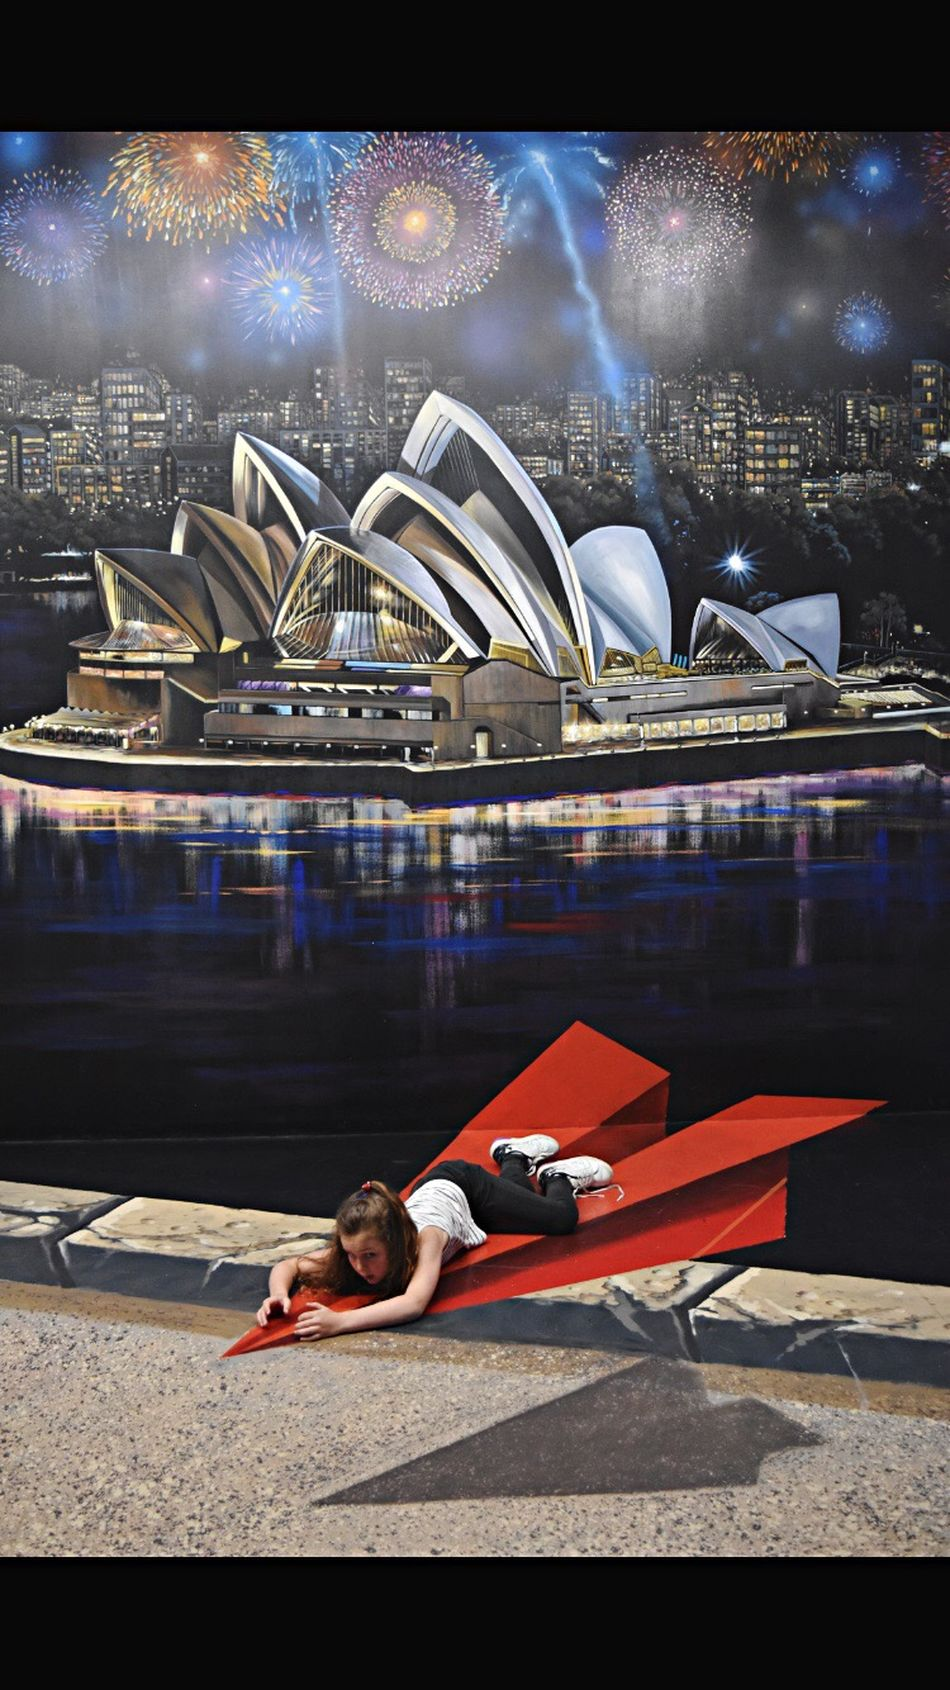 Stadium Sport Illuminated People Architecture Outdoors One Person Indoors  Airplane Paperplanes Melbourne Docklands,Melbourne Flying Sydney Sydney Opera House Fireworks Exploring Style